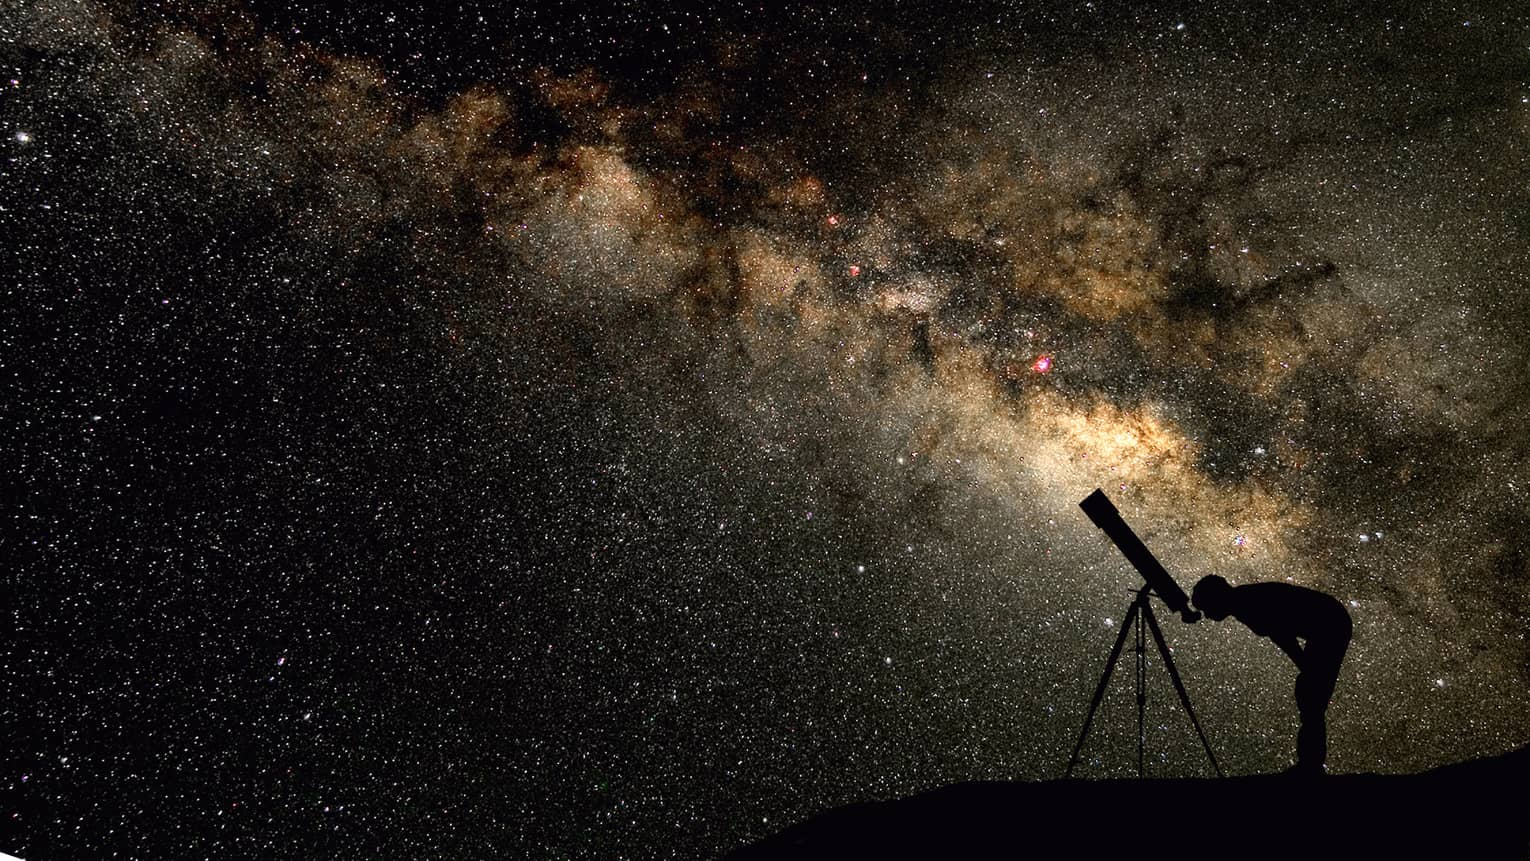 Silhouette of stargazer leaning into telescope against a starry sky, milky way